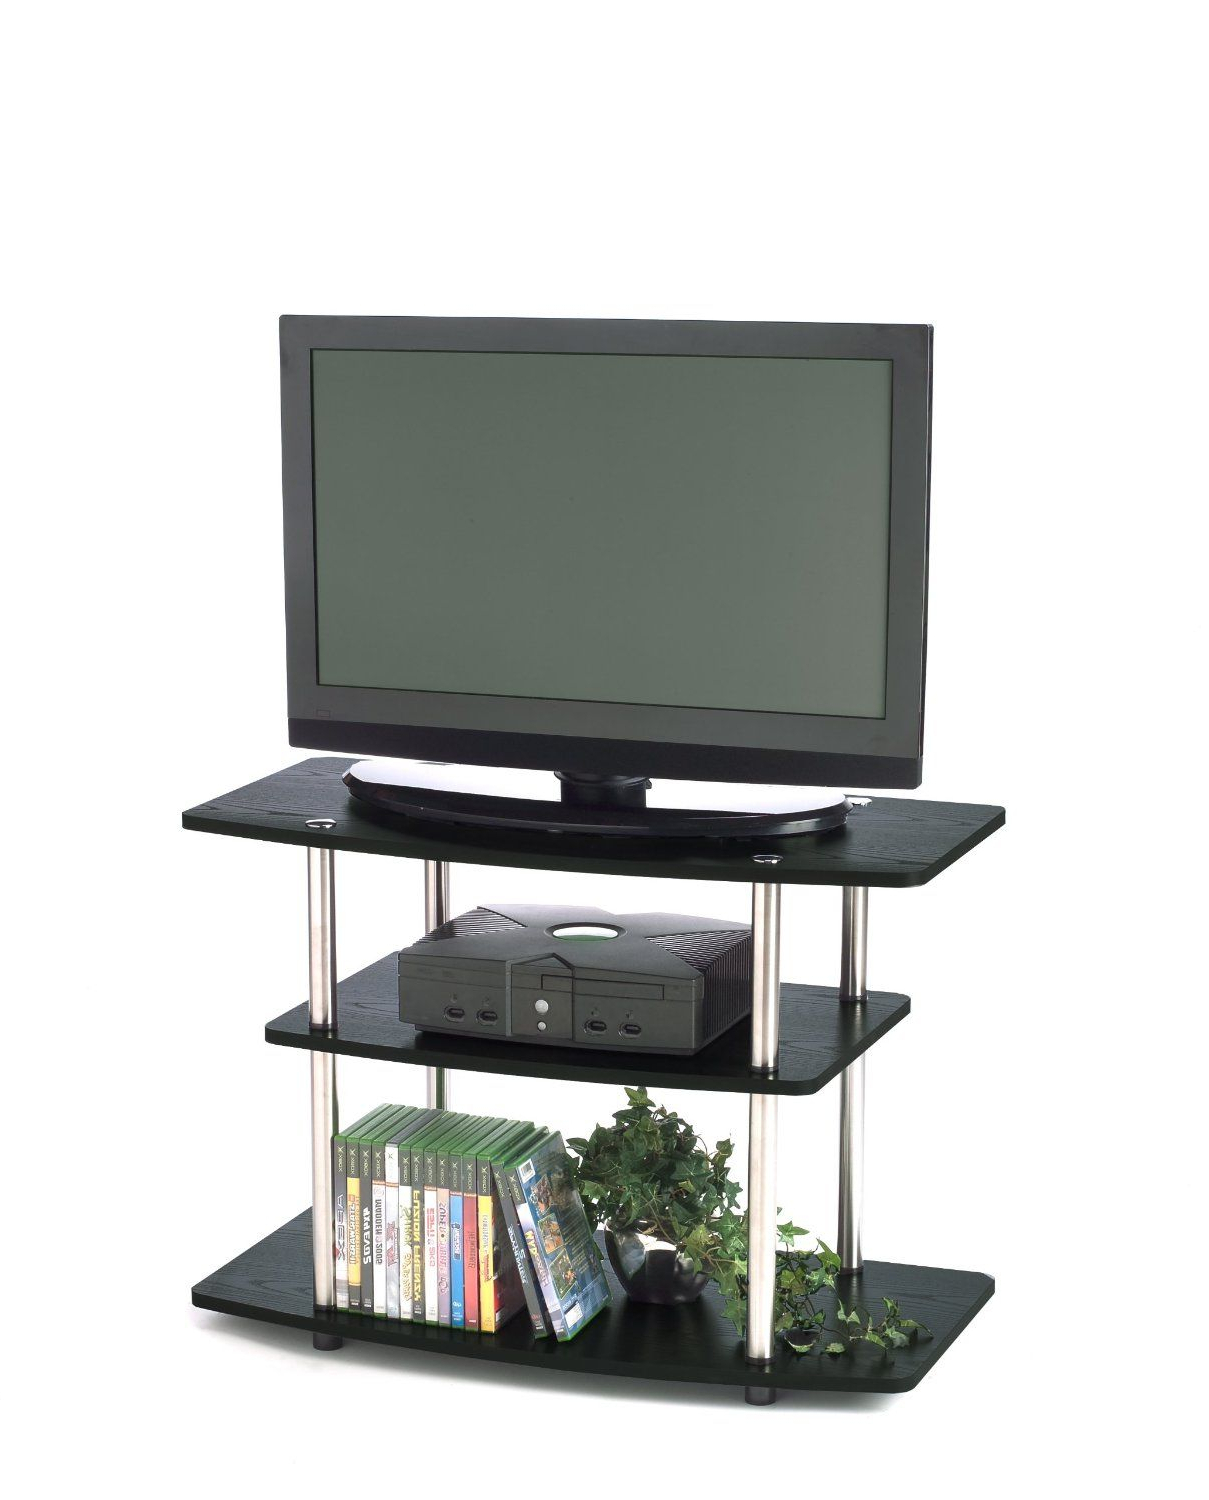 Modular Tv Stands Are Compact Tv Stands That Simply Have A Specific Intended For Favorite Modular Tv Stands Furniture (View 8 of 20)